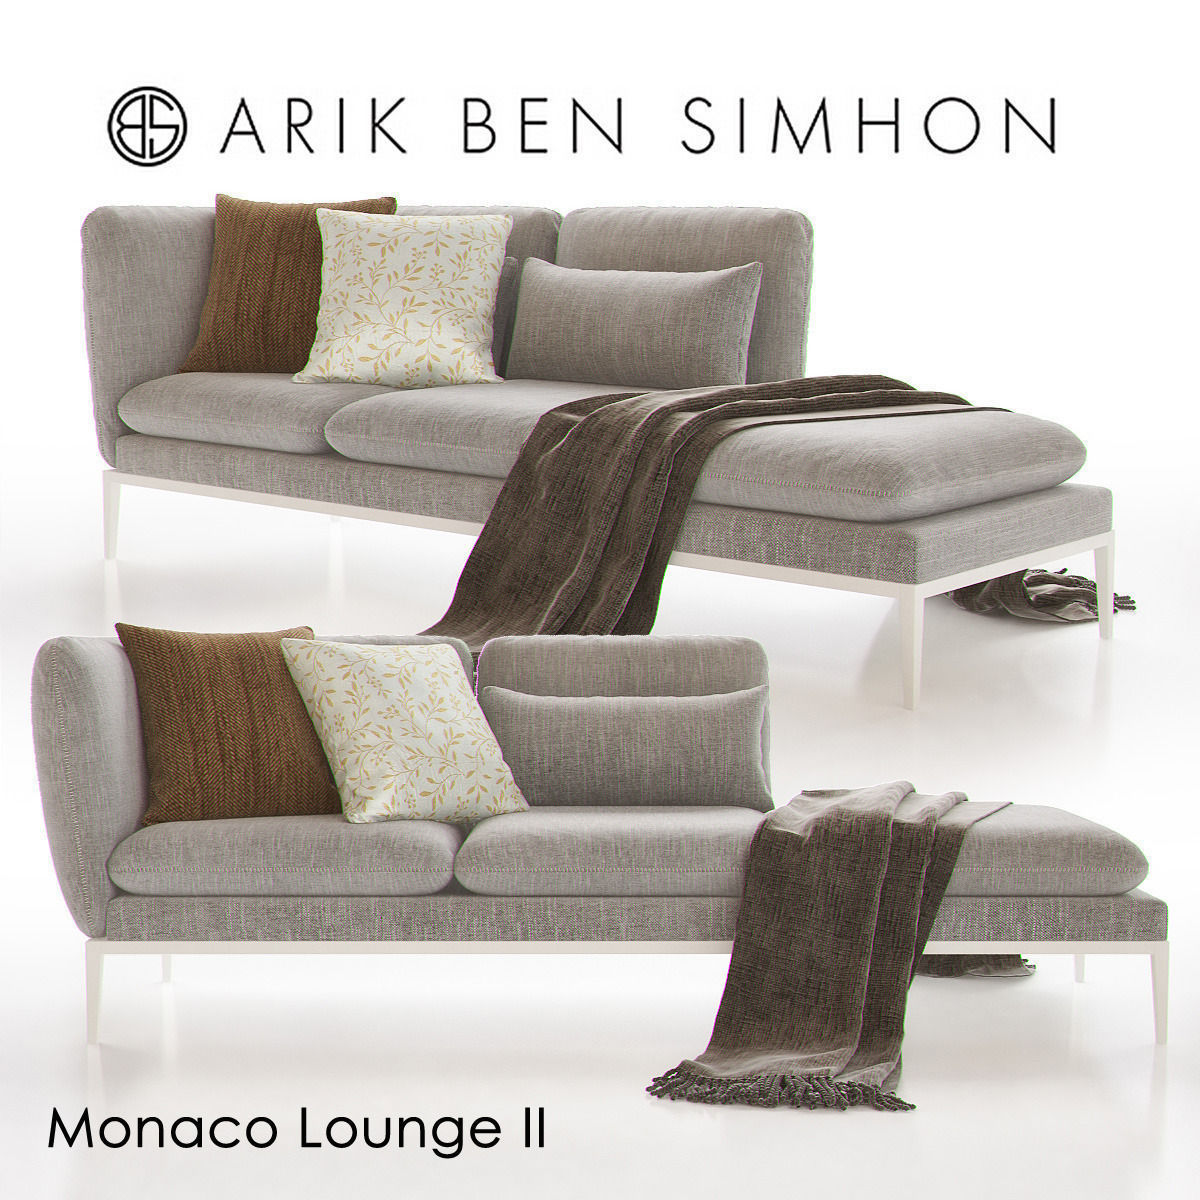 Monaco Chaise Lounge Ii By Arik Ben Simhon 3d Model Max 1 ...